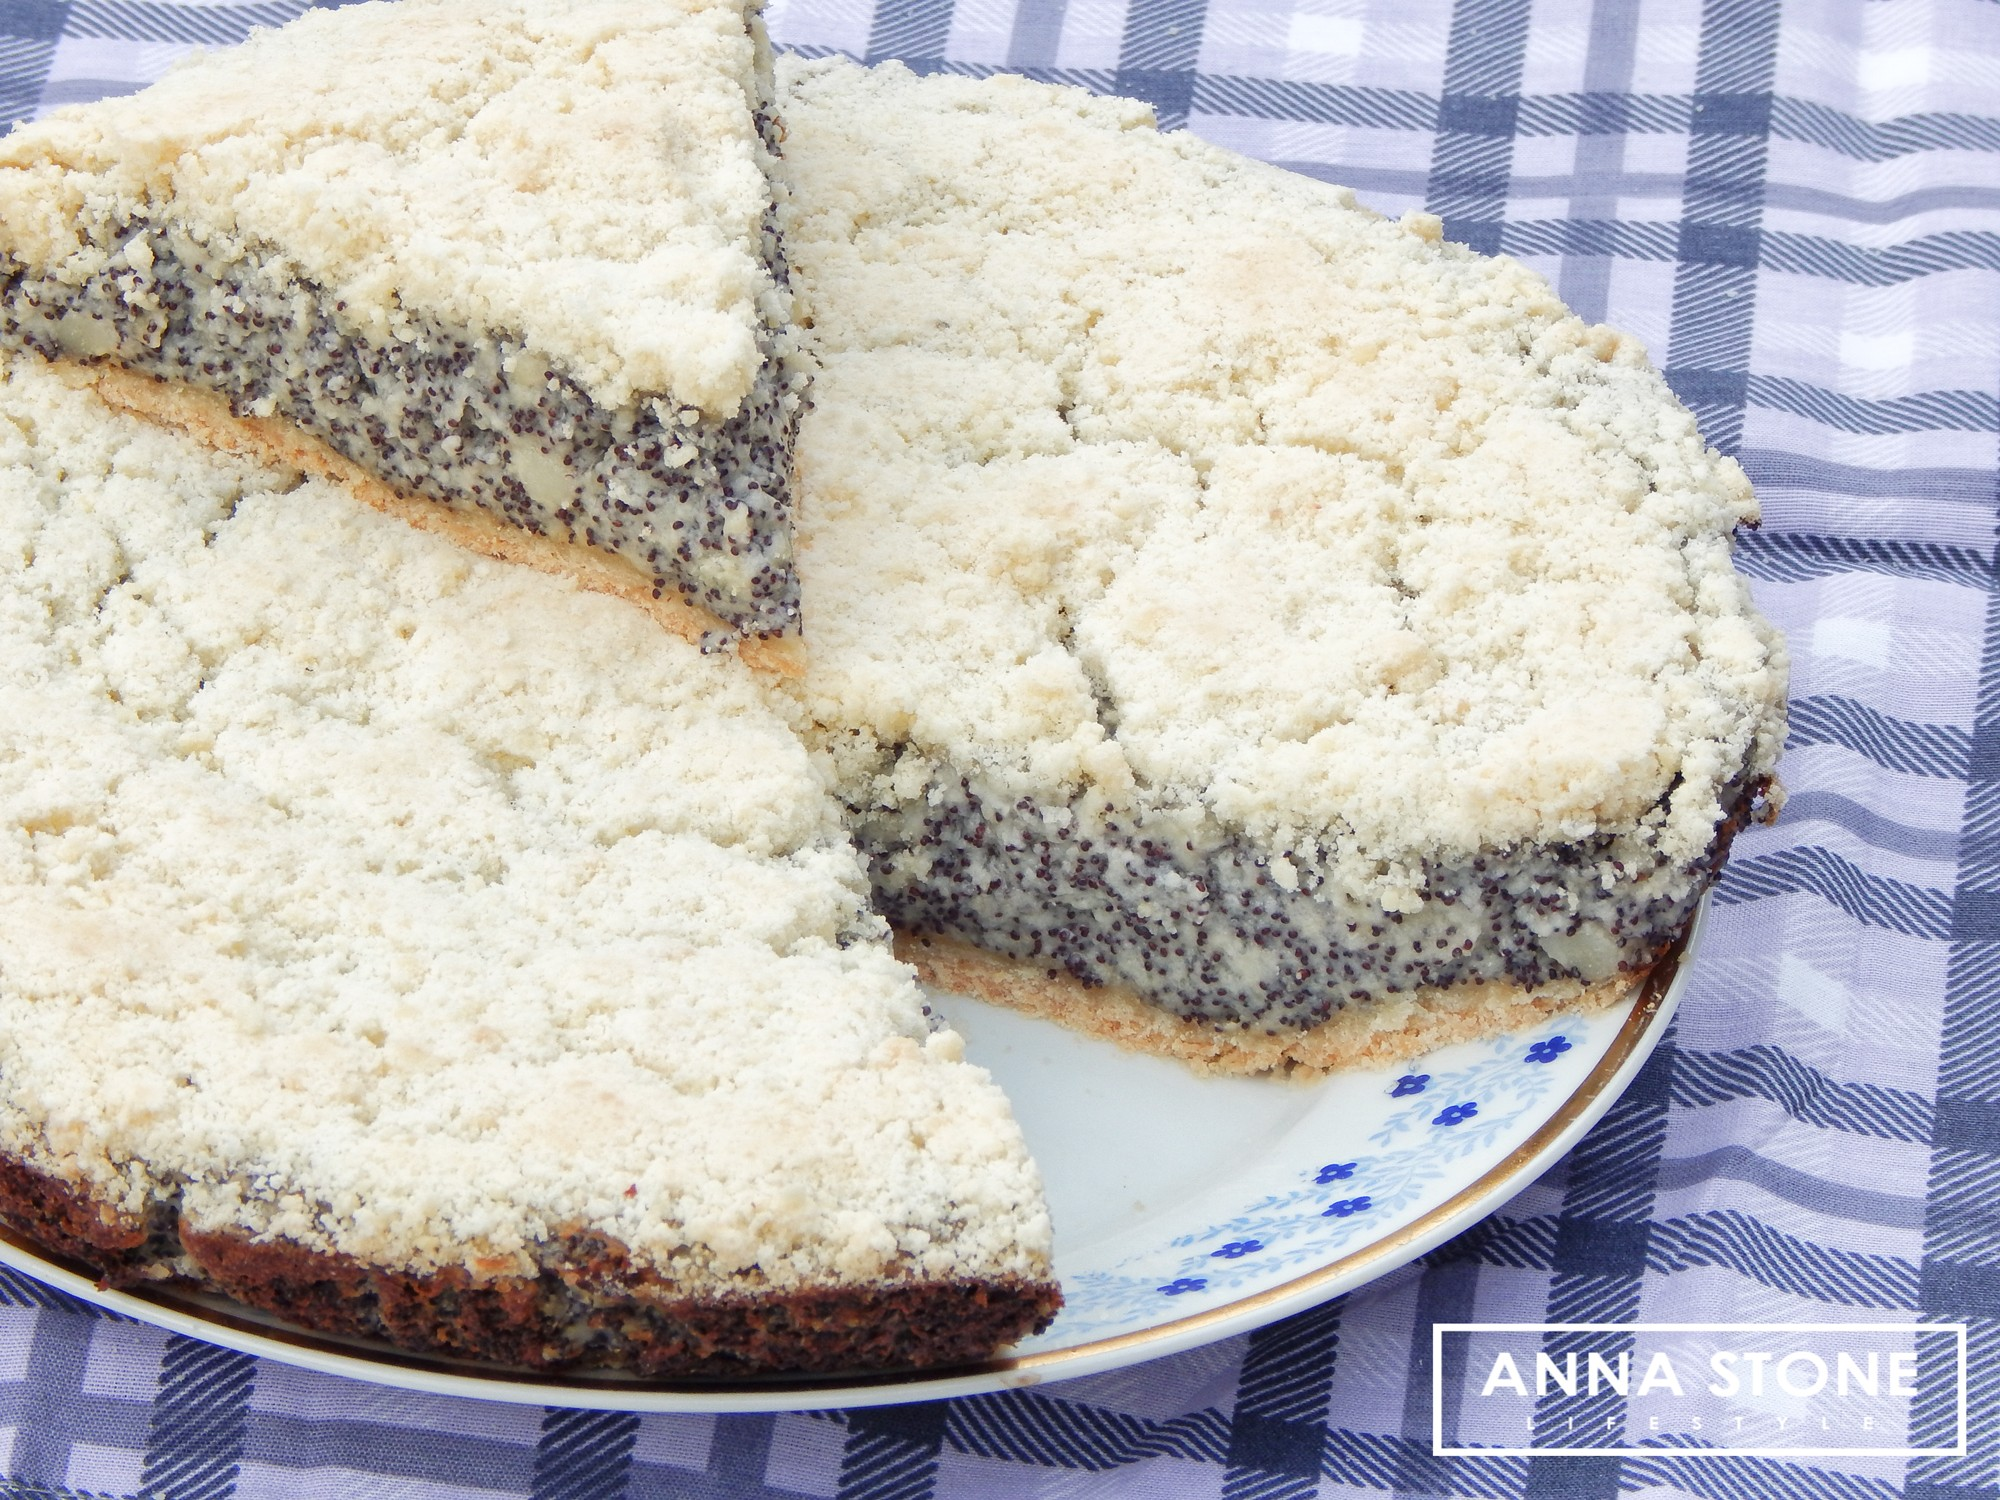 Image for Poppy seed cheesecake